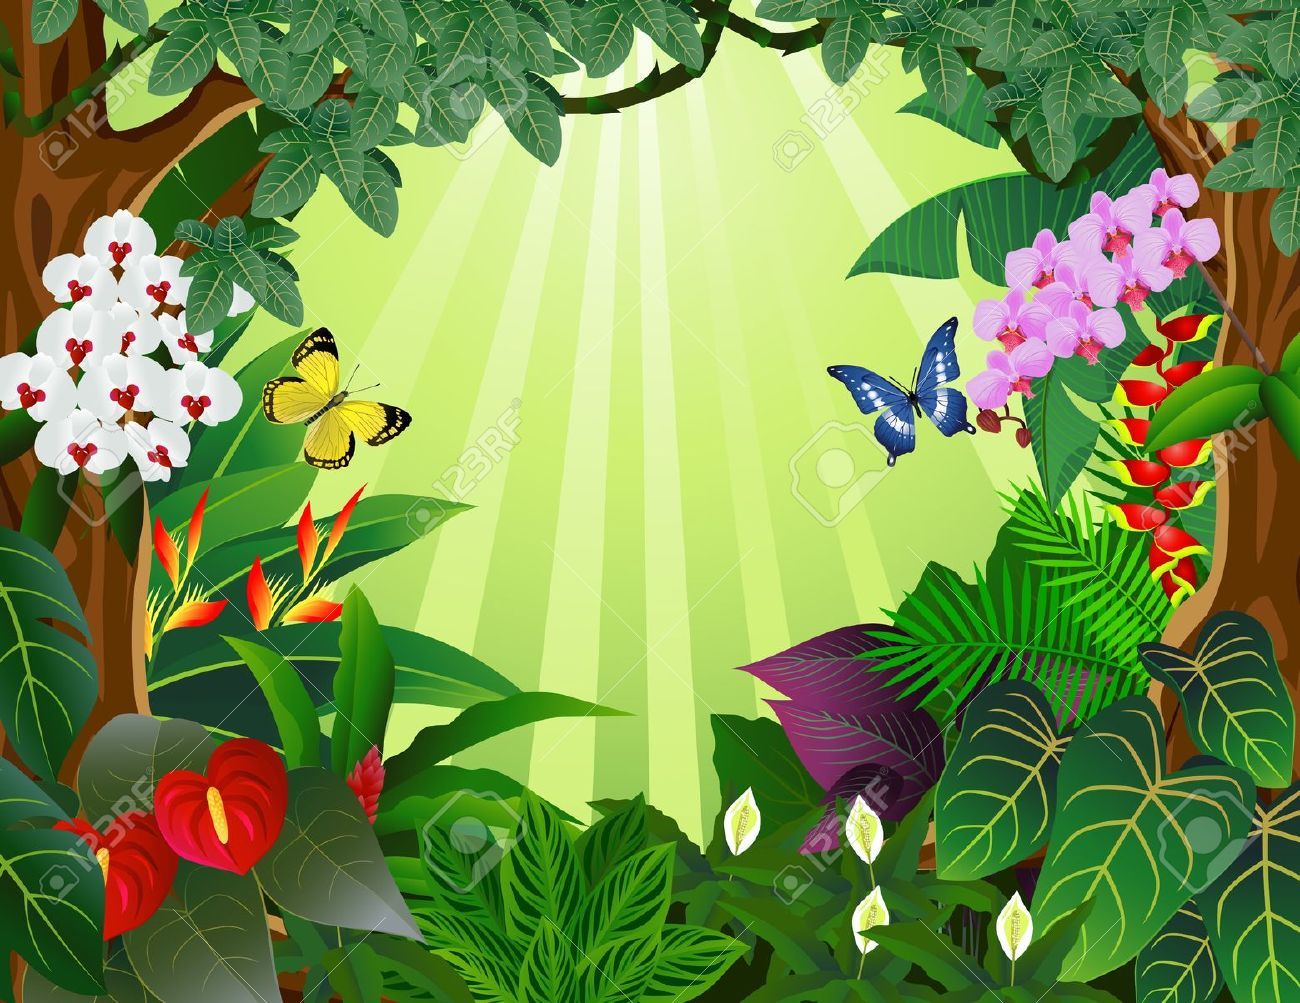 85+ Tropical Rainforest Clipart | ClipartLook royalty free library